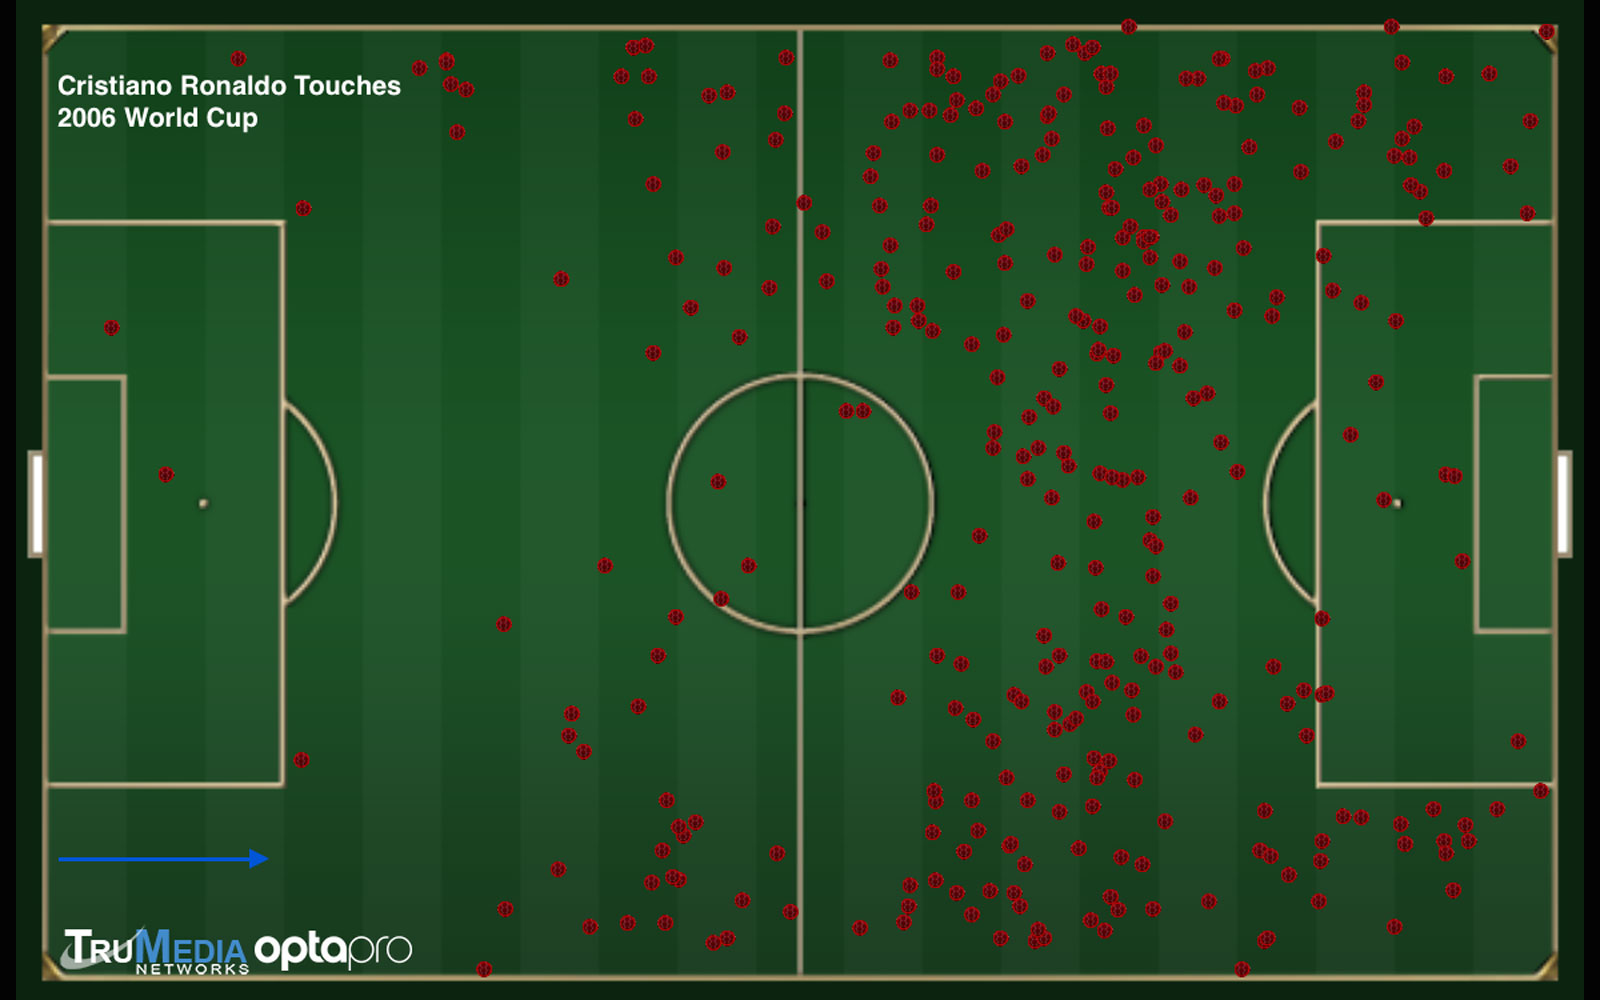 Cristiano Ronaldo's touch chart at the 2006 World Cup for Portugal